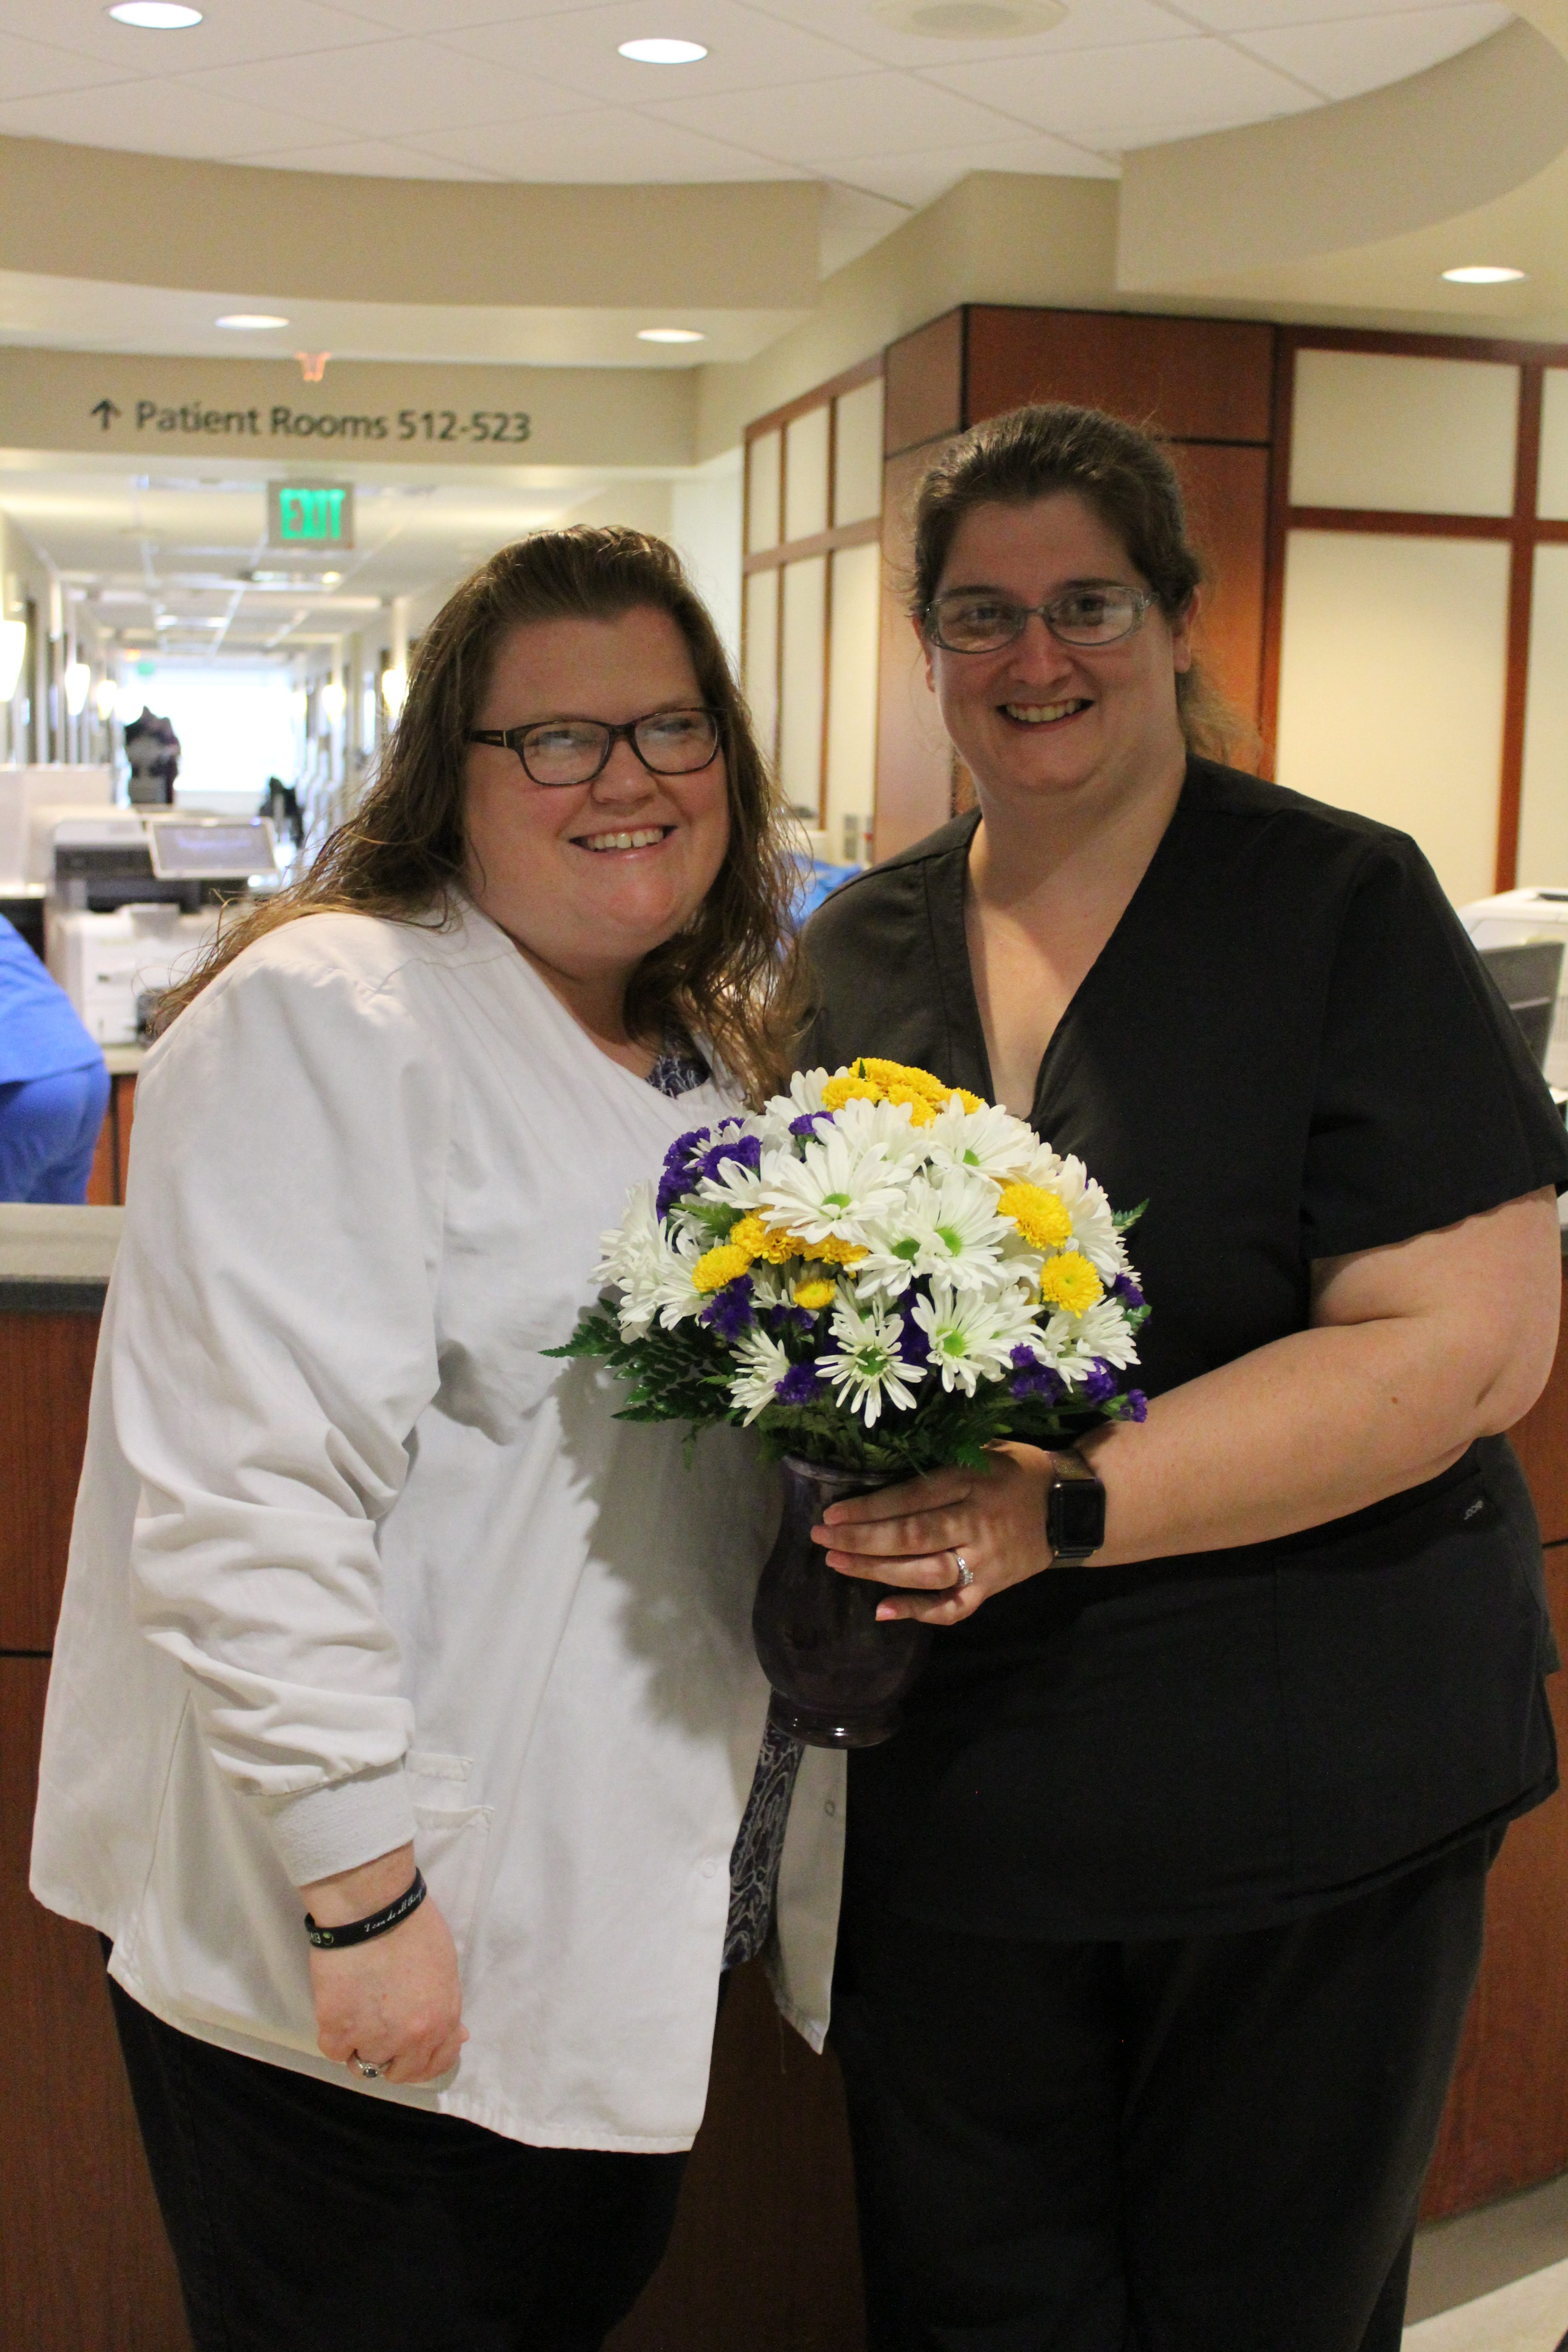 5R Nurse manager Crystal with Heather SCudder, holding daisies.